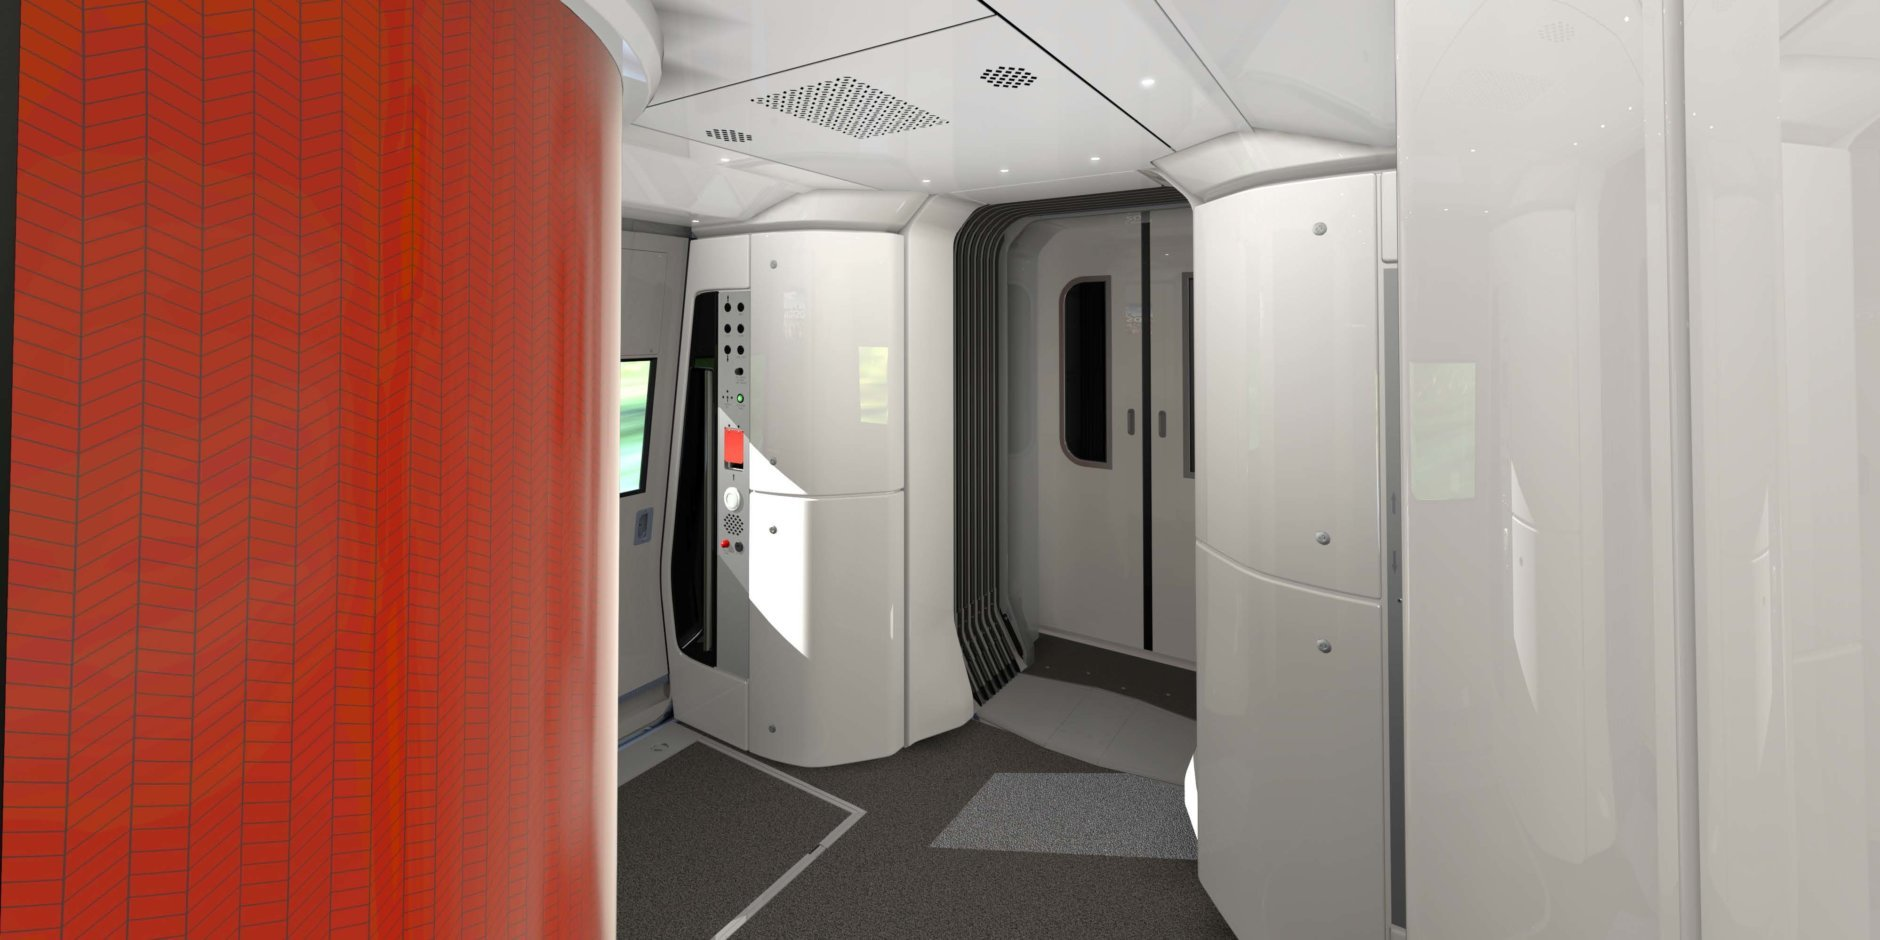 Articulated vestibules allow customers to easily and smoothly move between train cars. (Courtesy Amtrak)